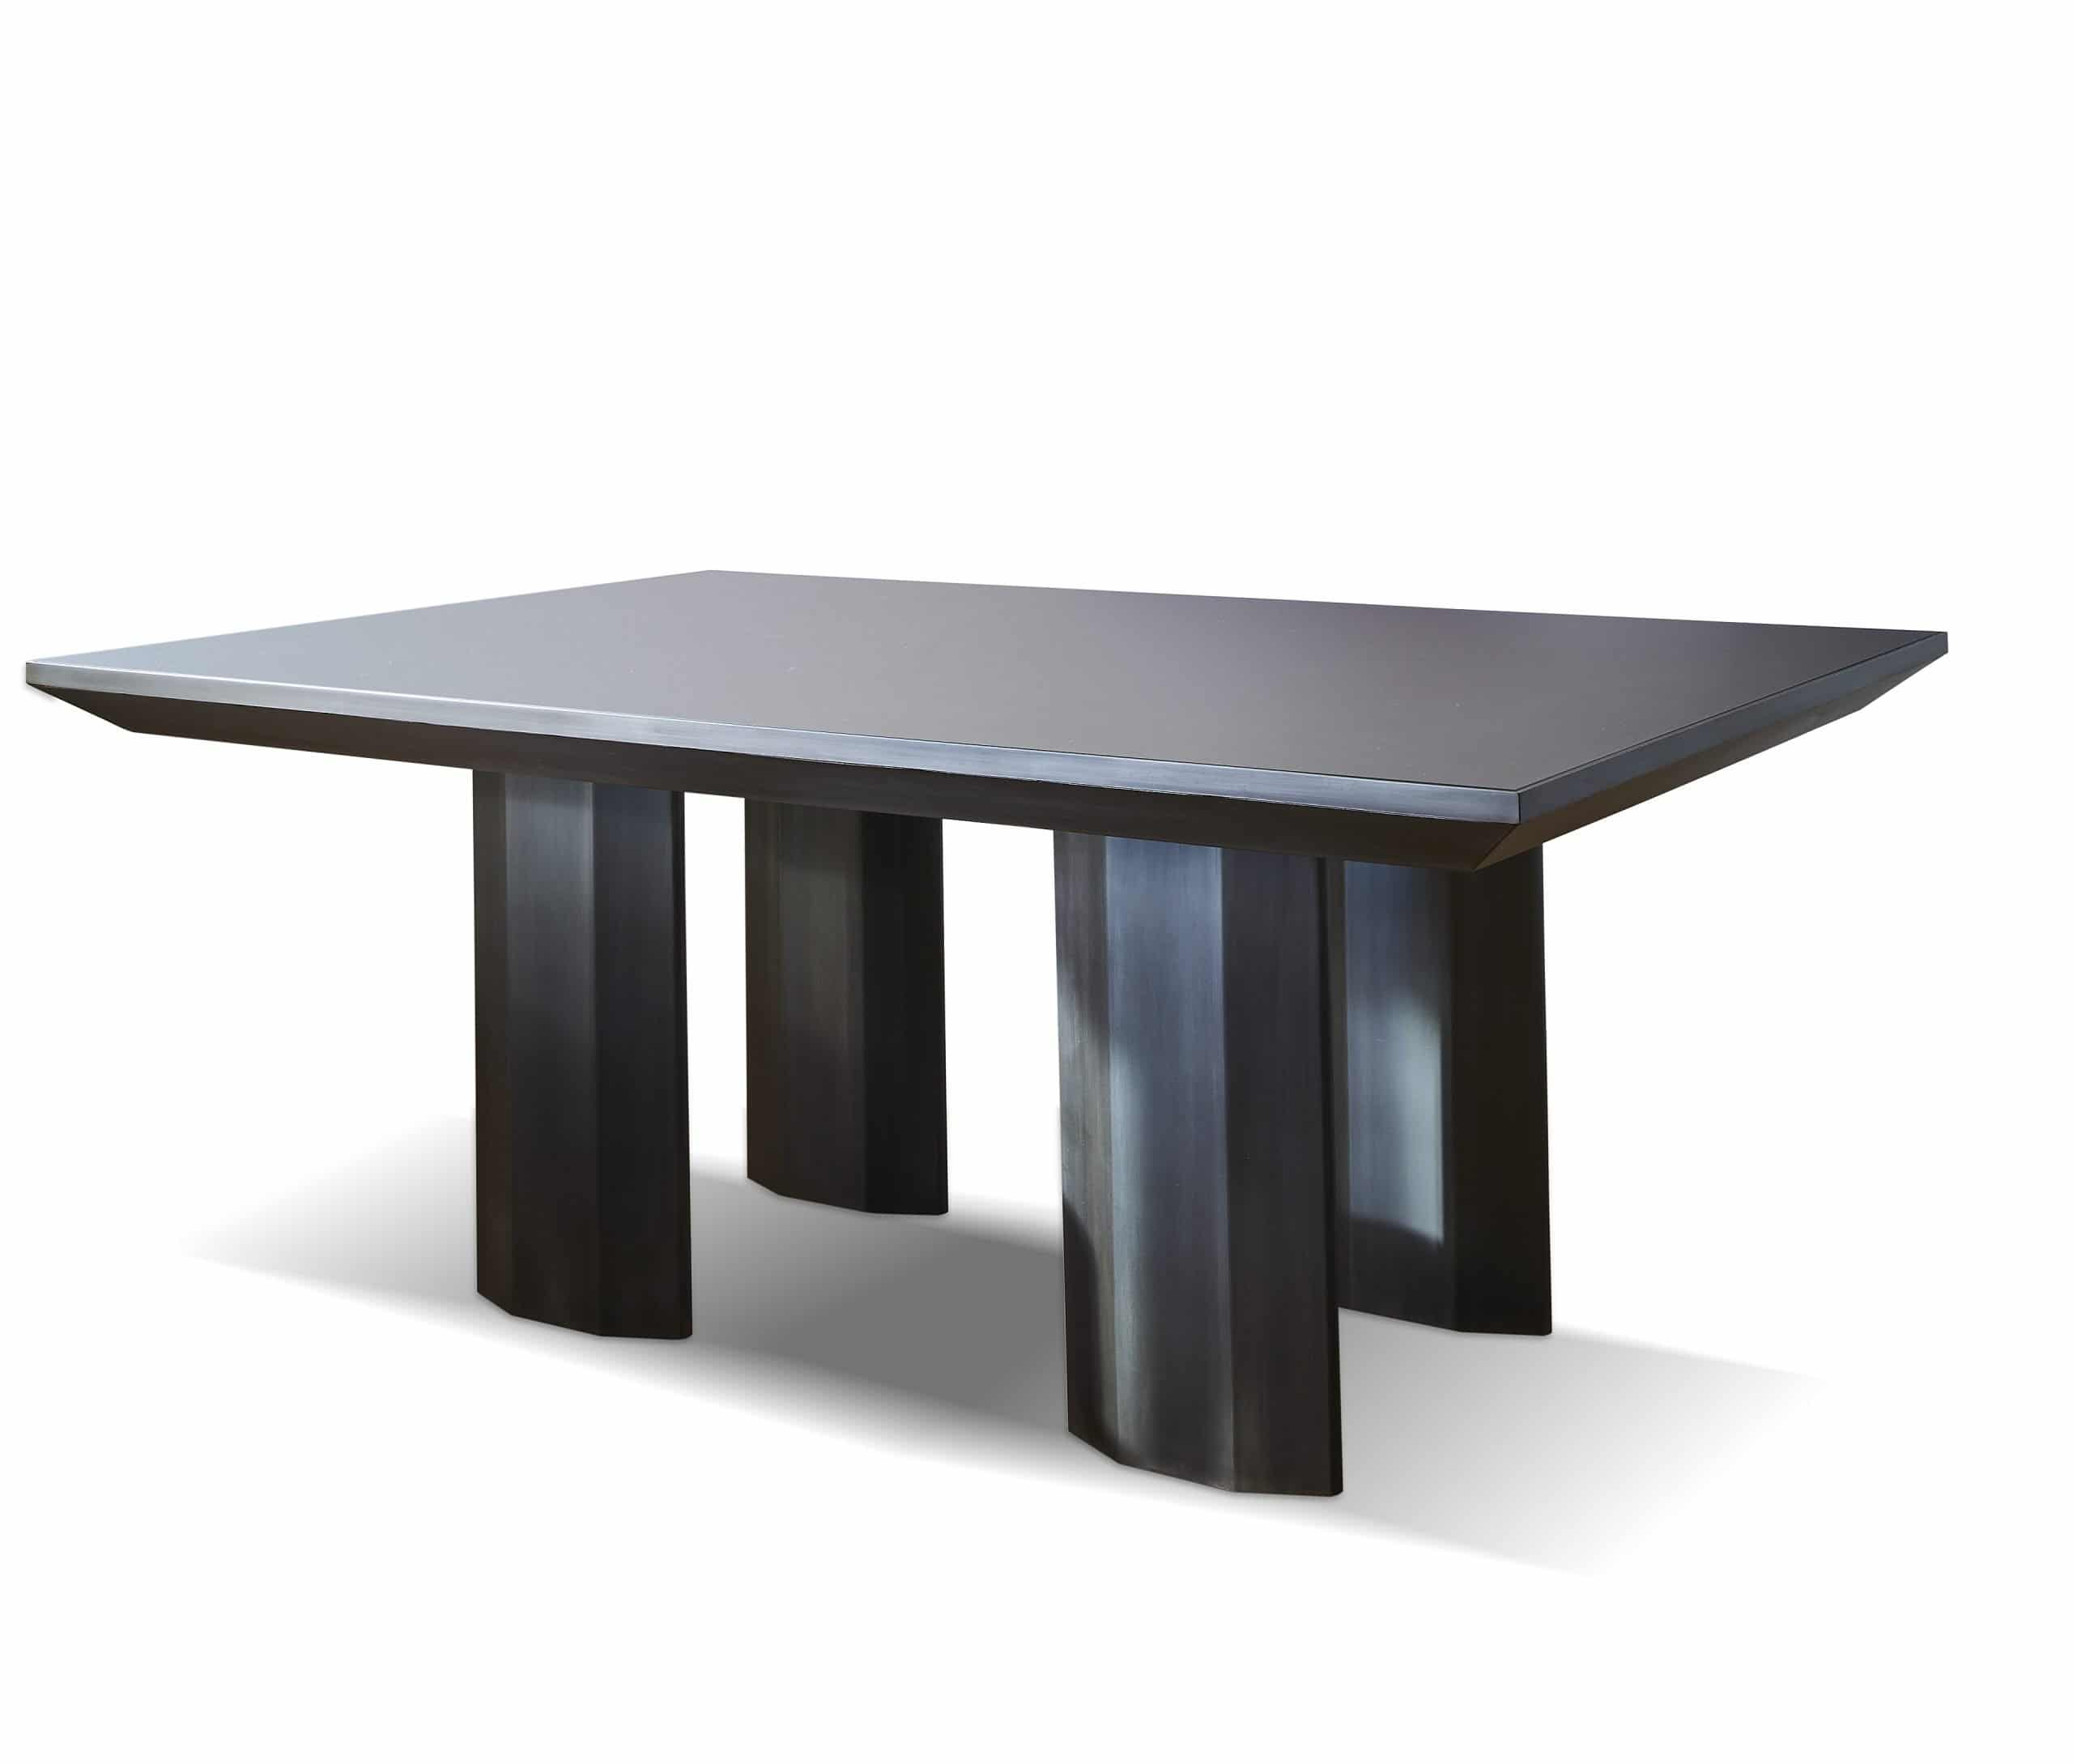 How I Chose The Perfect Dining Room Table by Maurizio Morazzoni